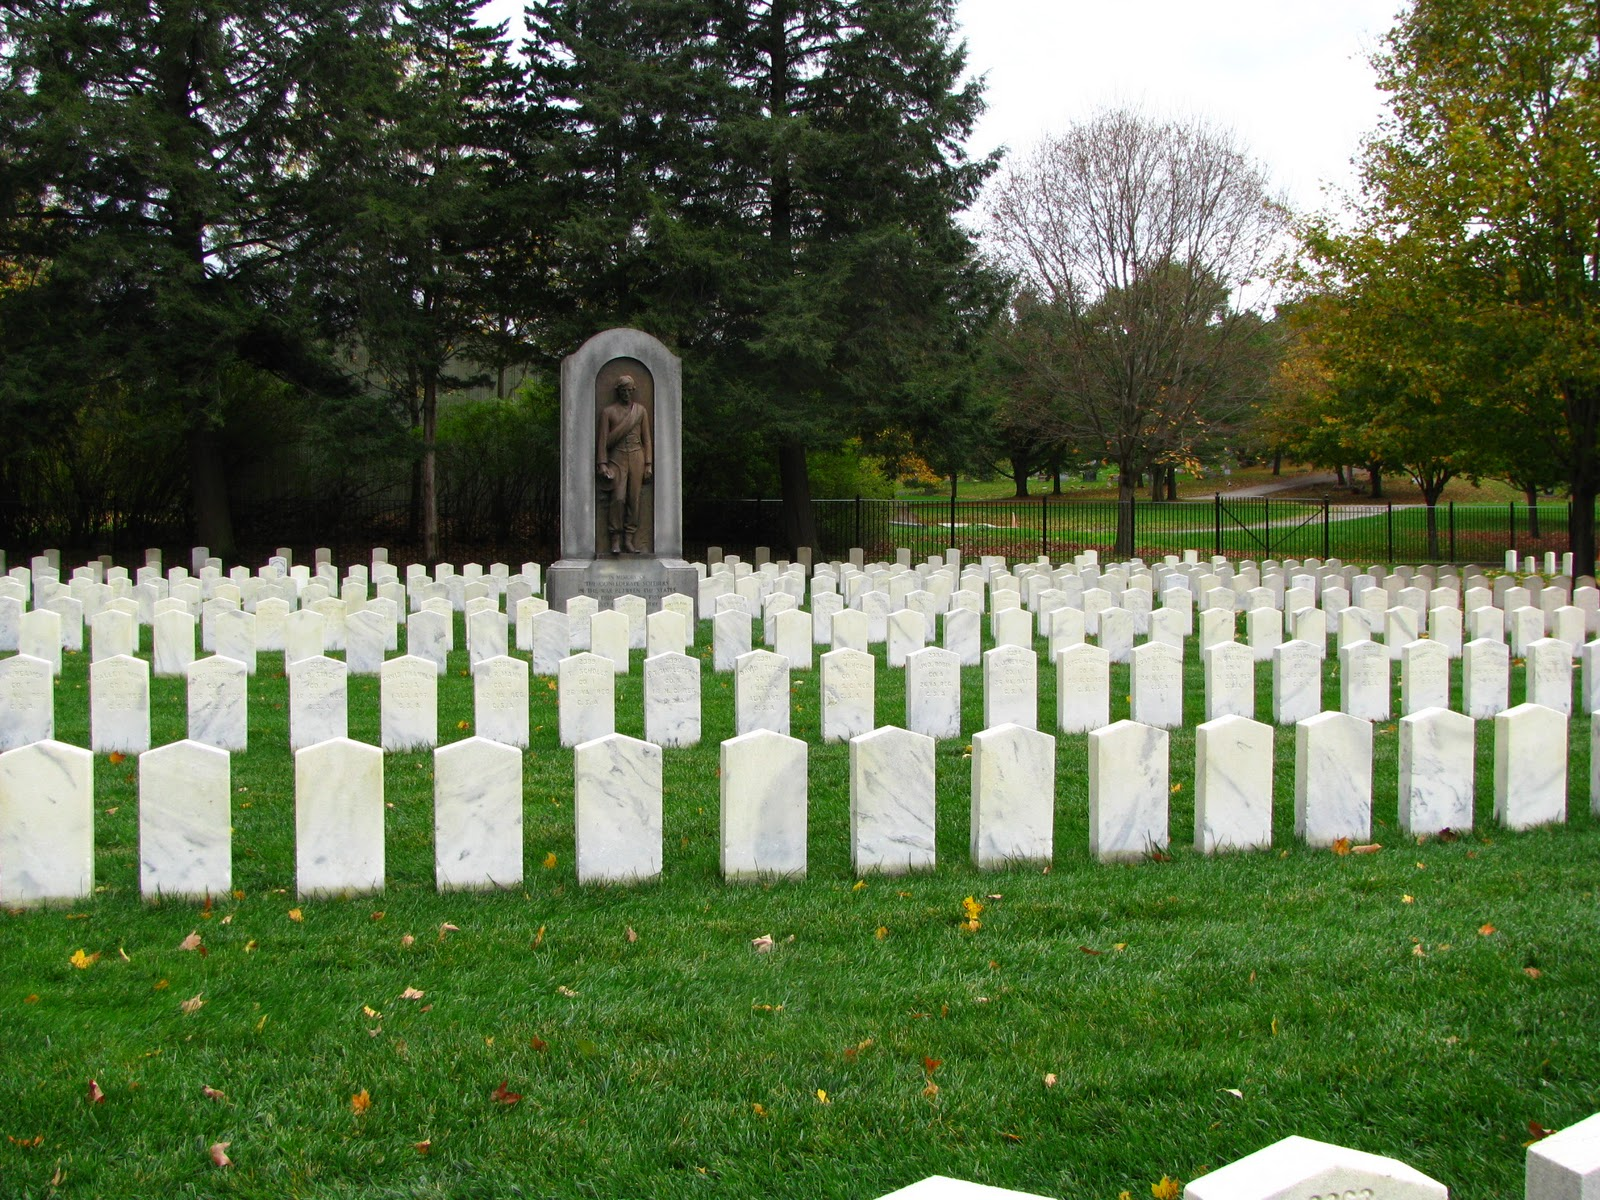 A general overview as to the amount of soldiers buried at the Woodlawn Cemetery.